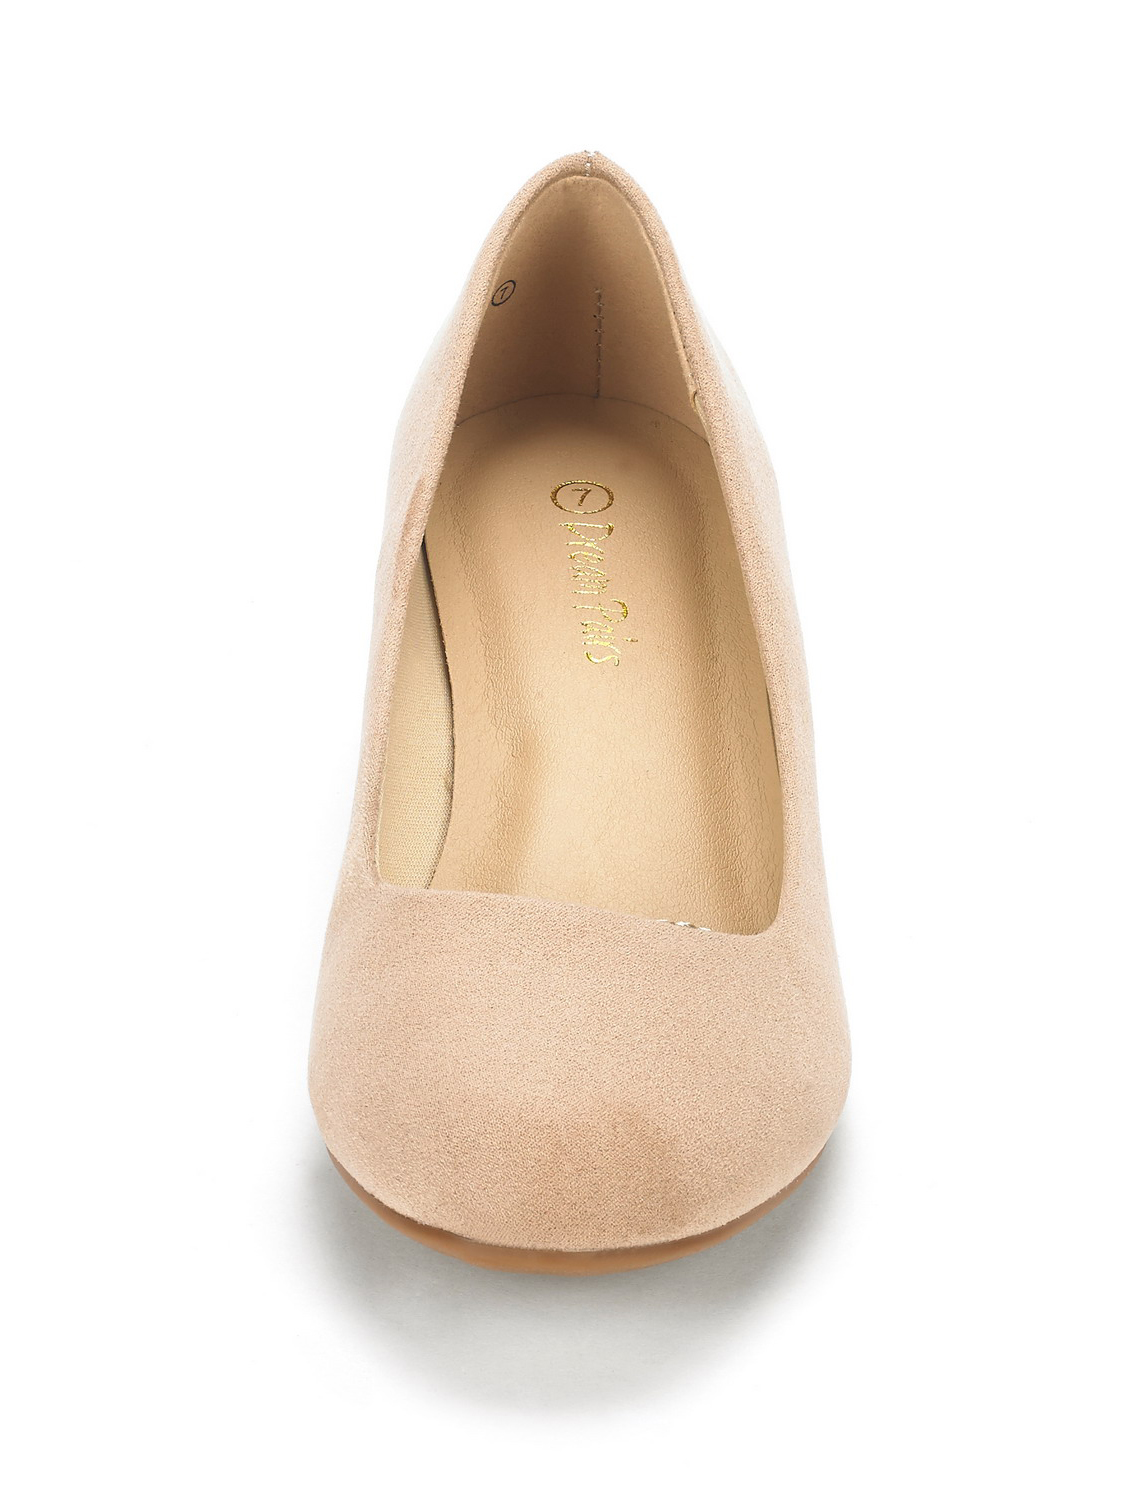 DREAM-PAIRS-Women-039-s-Mid-Wedge-Heel-Shoes-Slip-On-Comfort-Dress-Shoes-Suede-PU thumbnail 5